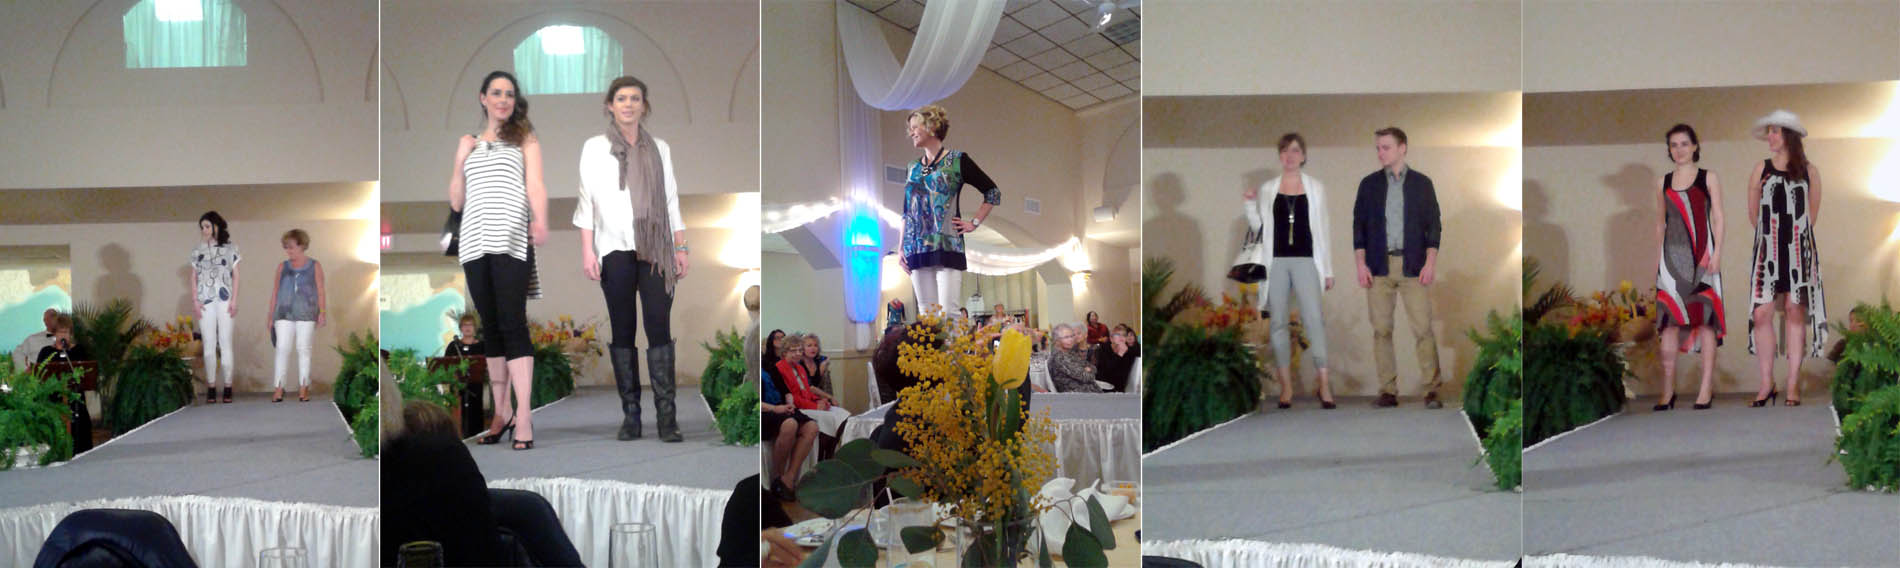 Italian club womens day fashion show